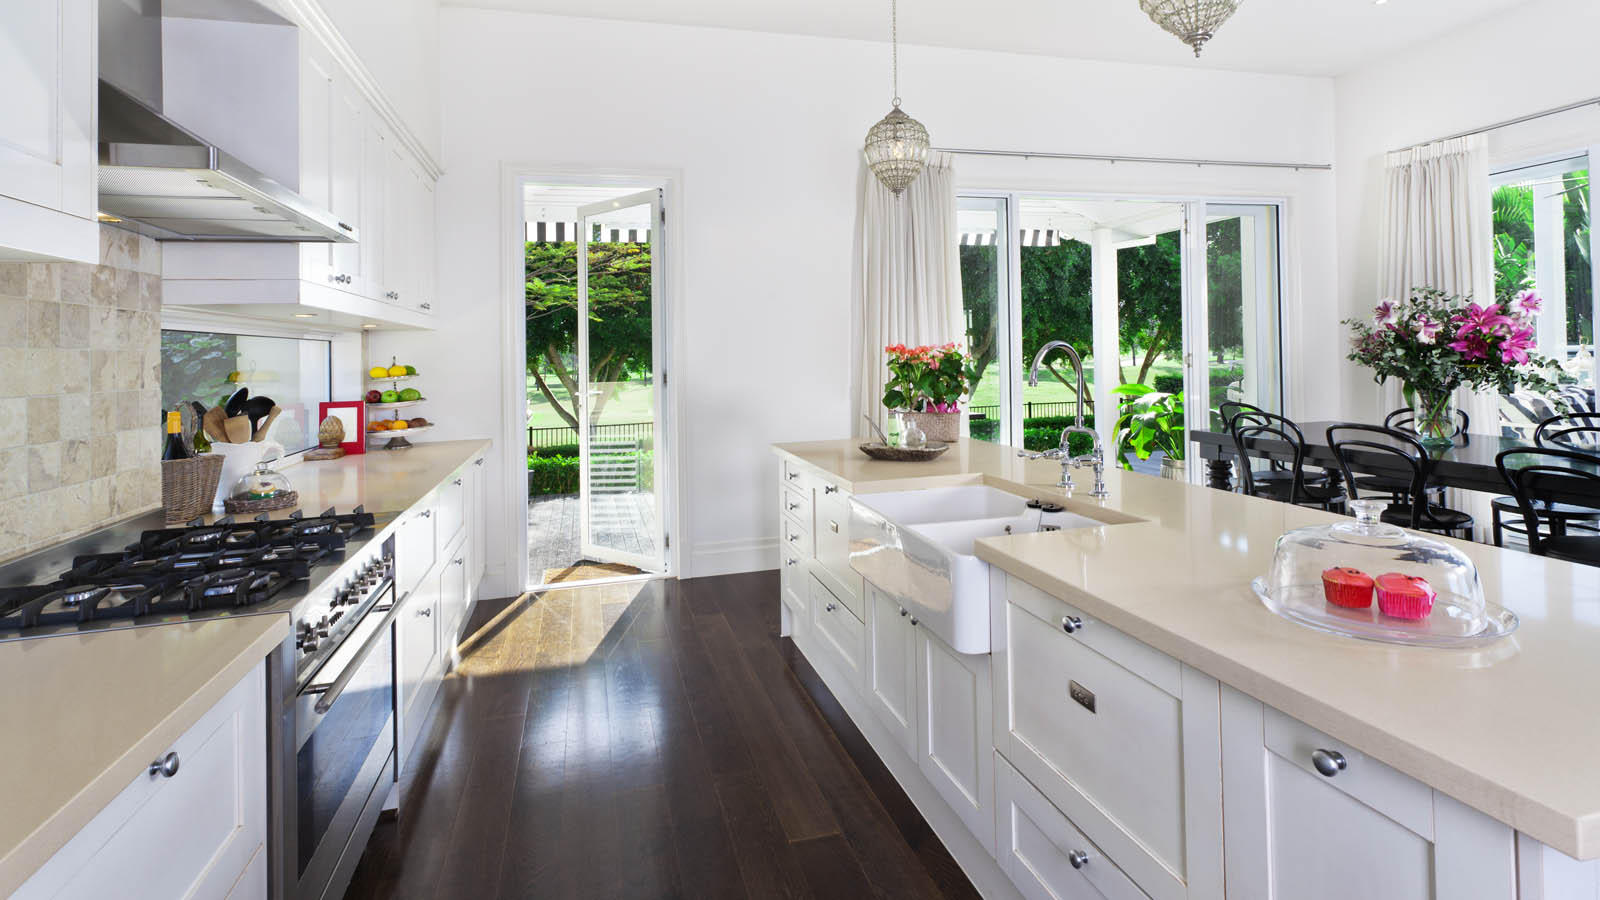 How To Clean The Kitchen Cabinets Keeping Your Kitchen Clean For Good A Cleaner Life